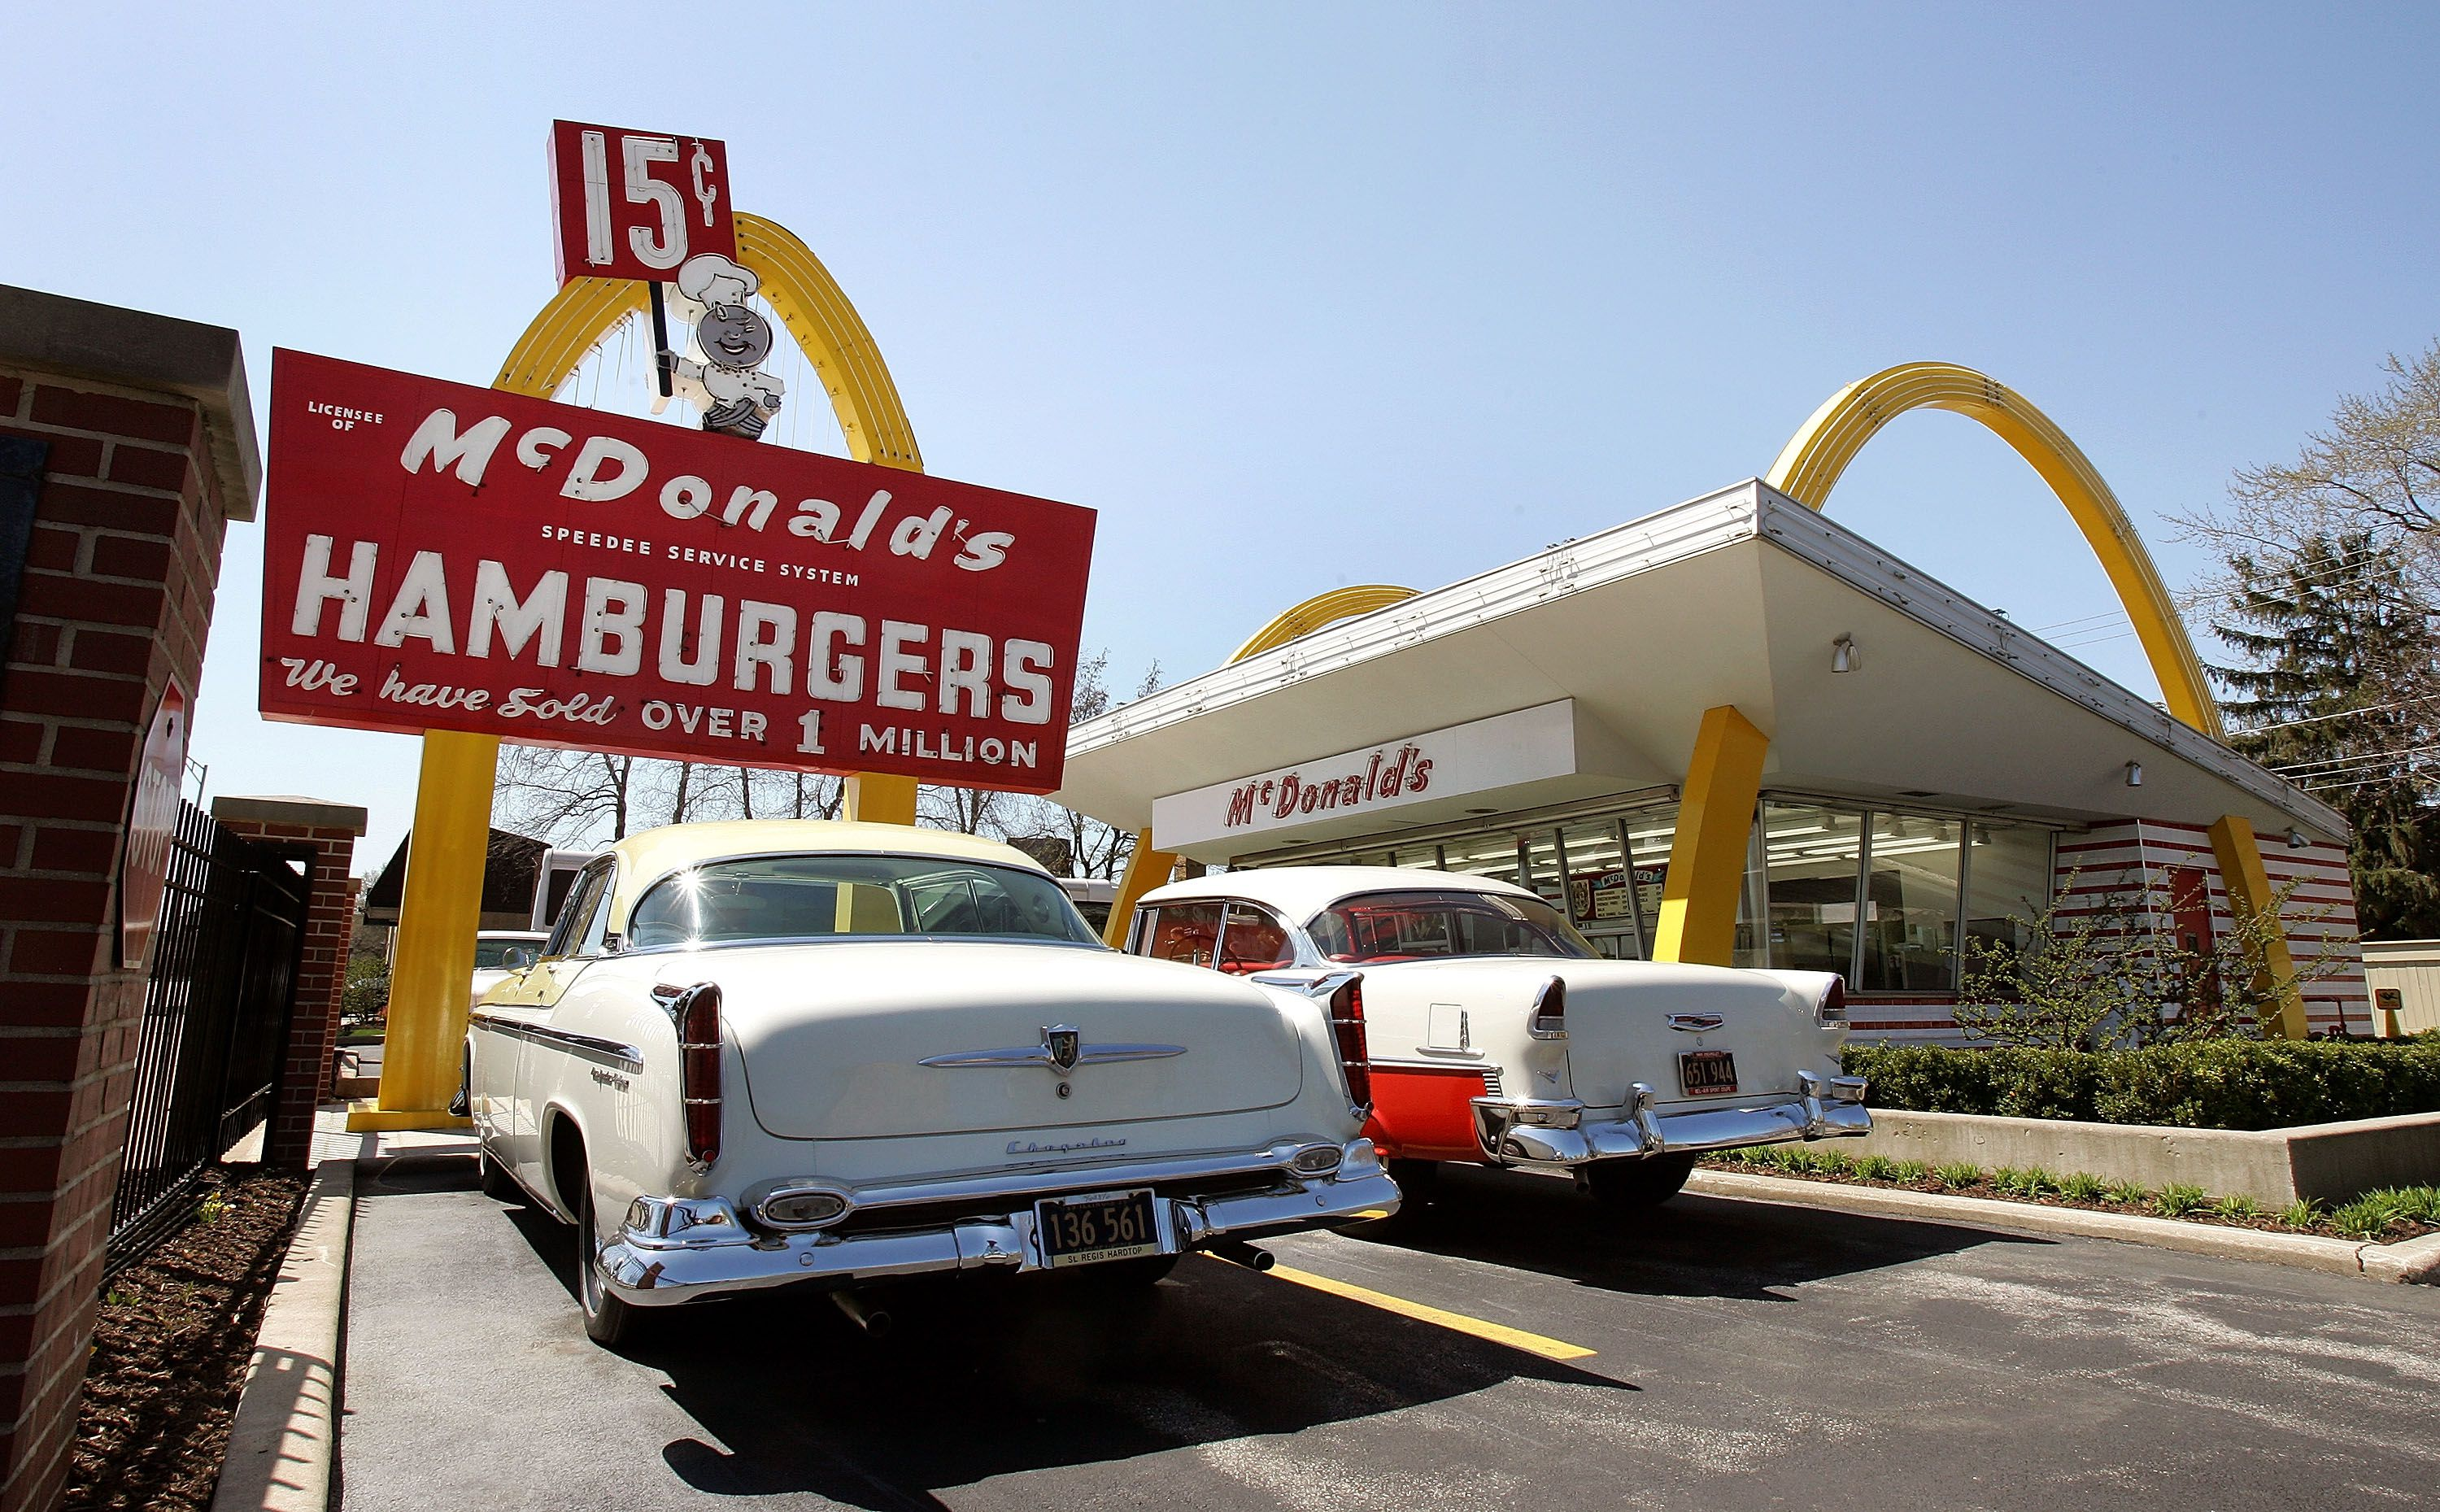 10 Restaurants You Didn't Know Changed Their Name